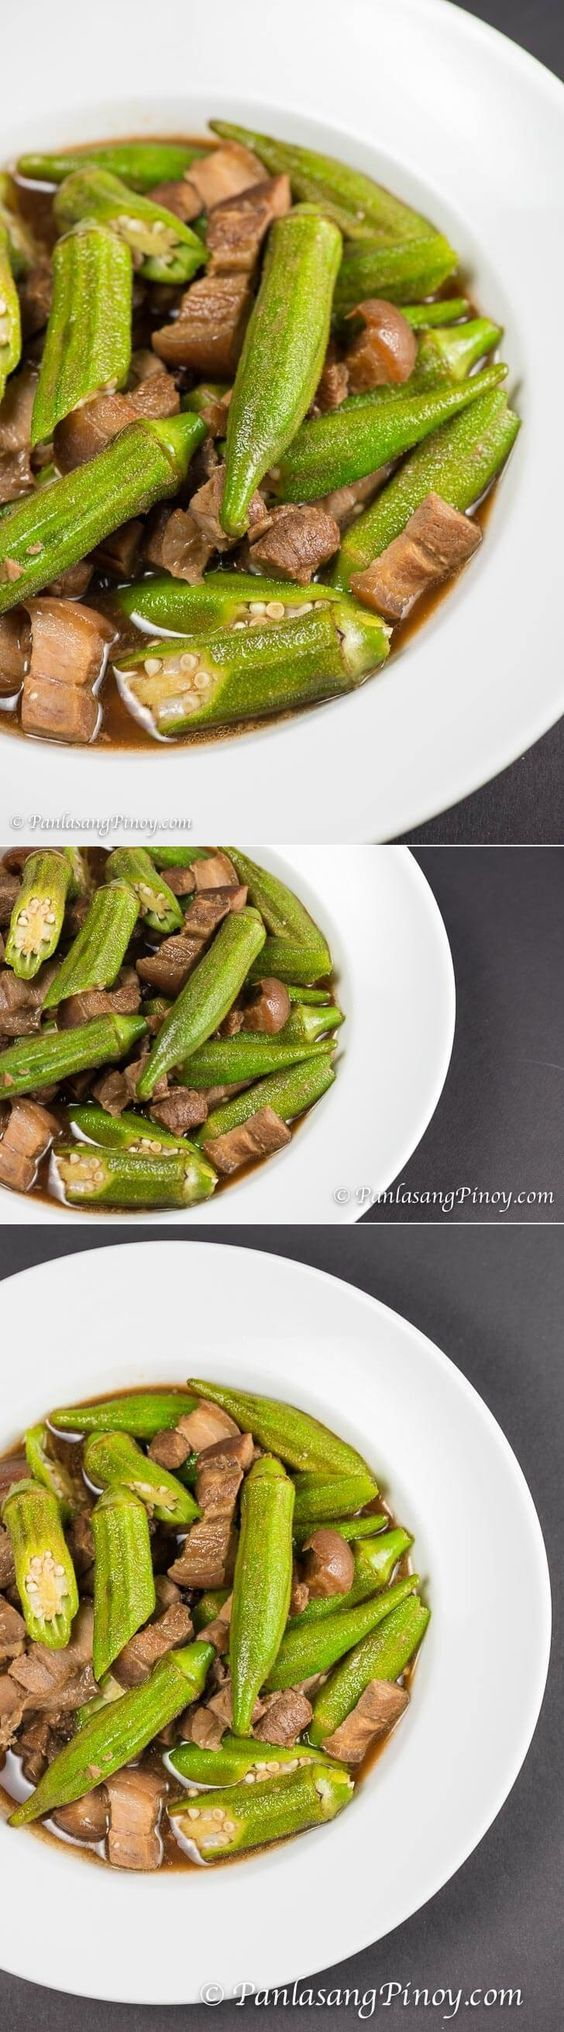 Adobong Okra with Pork Recipe